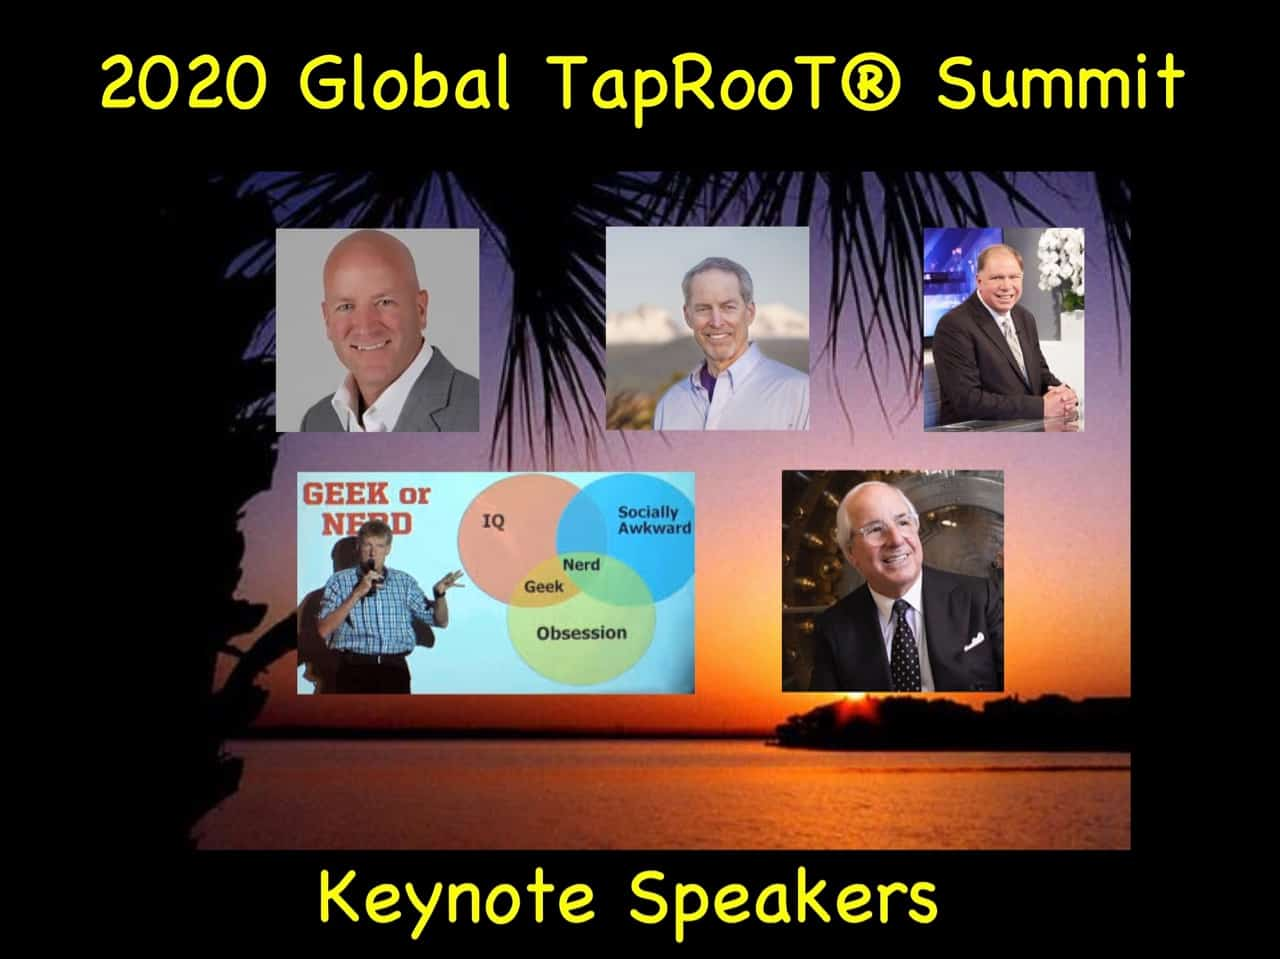 Keynote Speakers at Summit